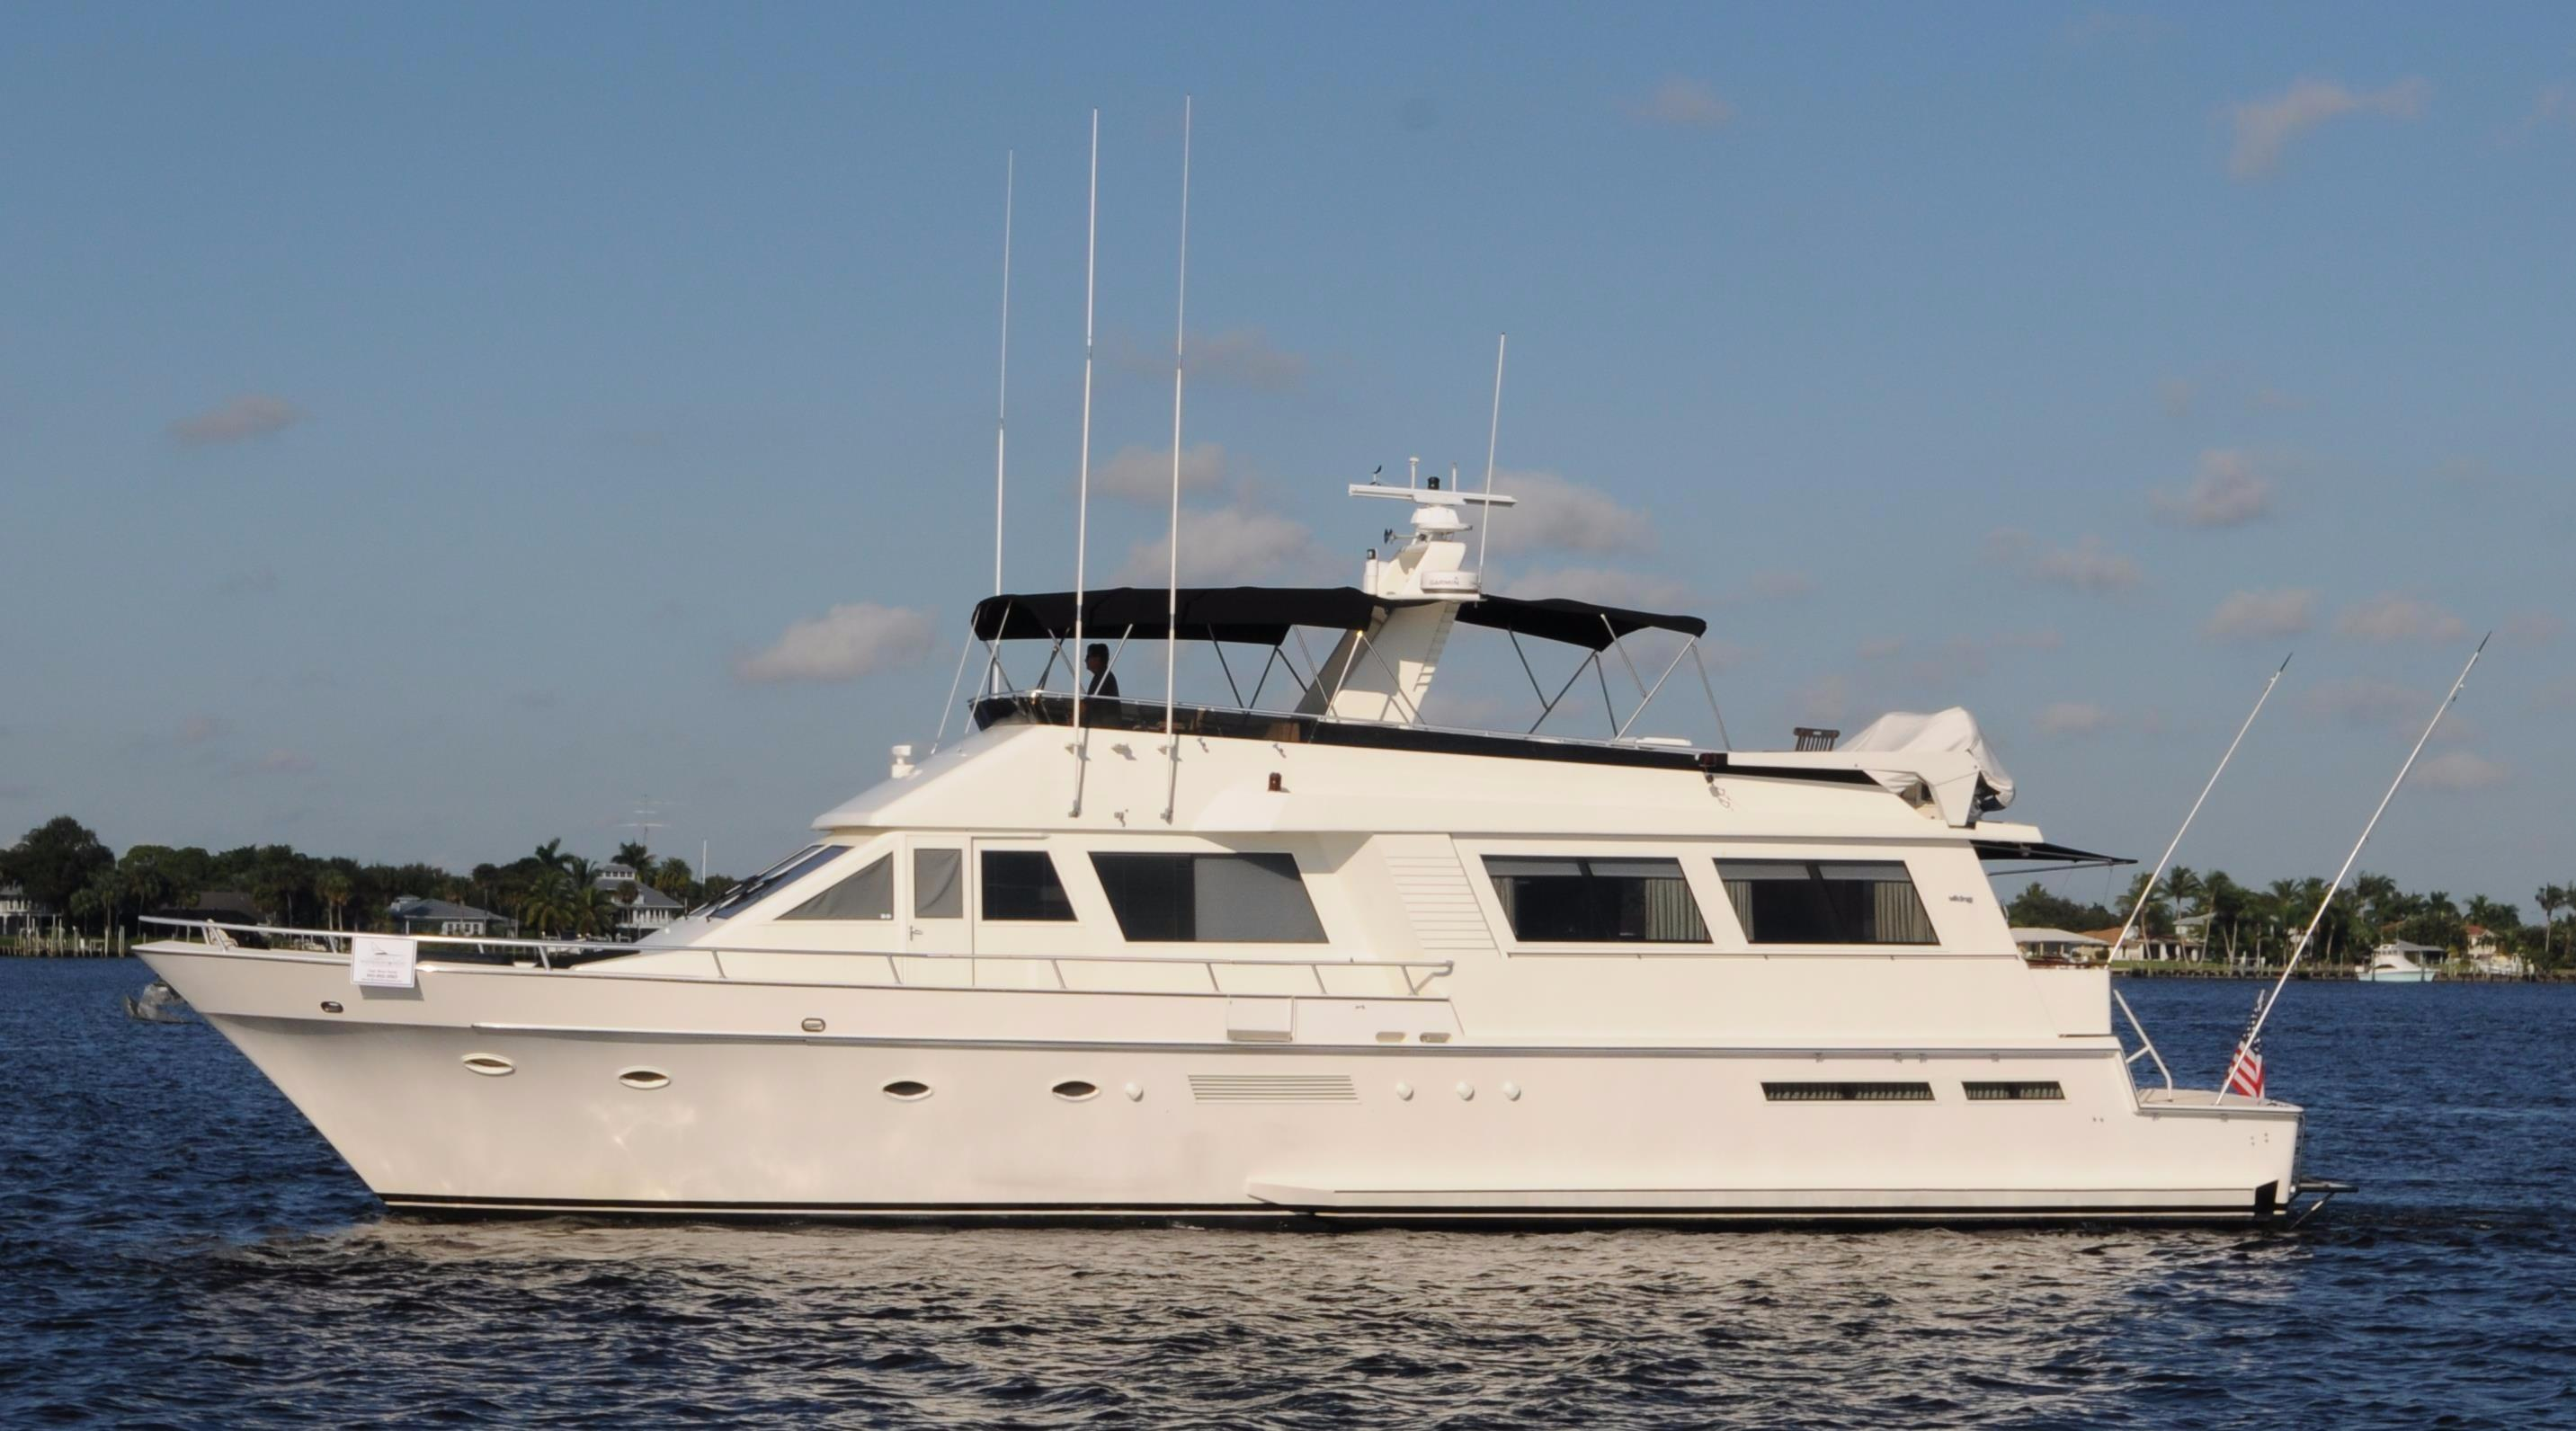 All Used Yachts For Sale From 100000 To 500000